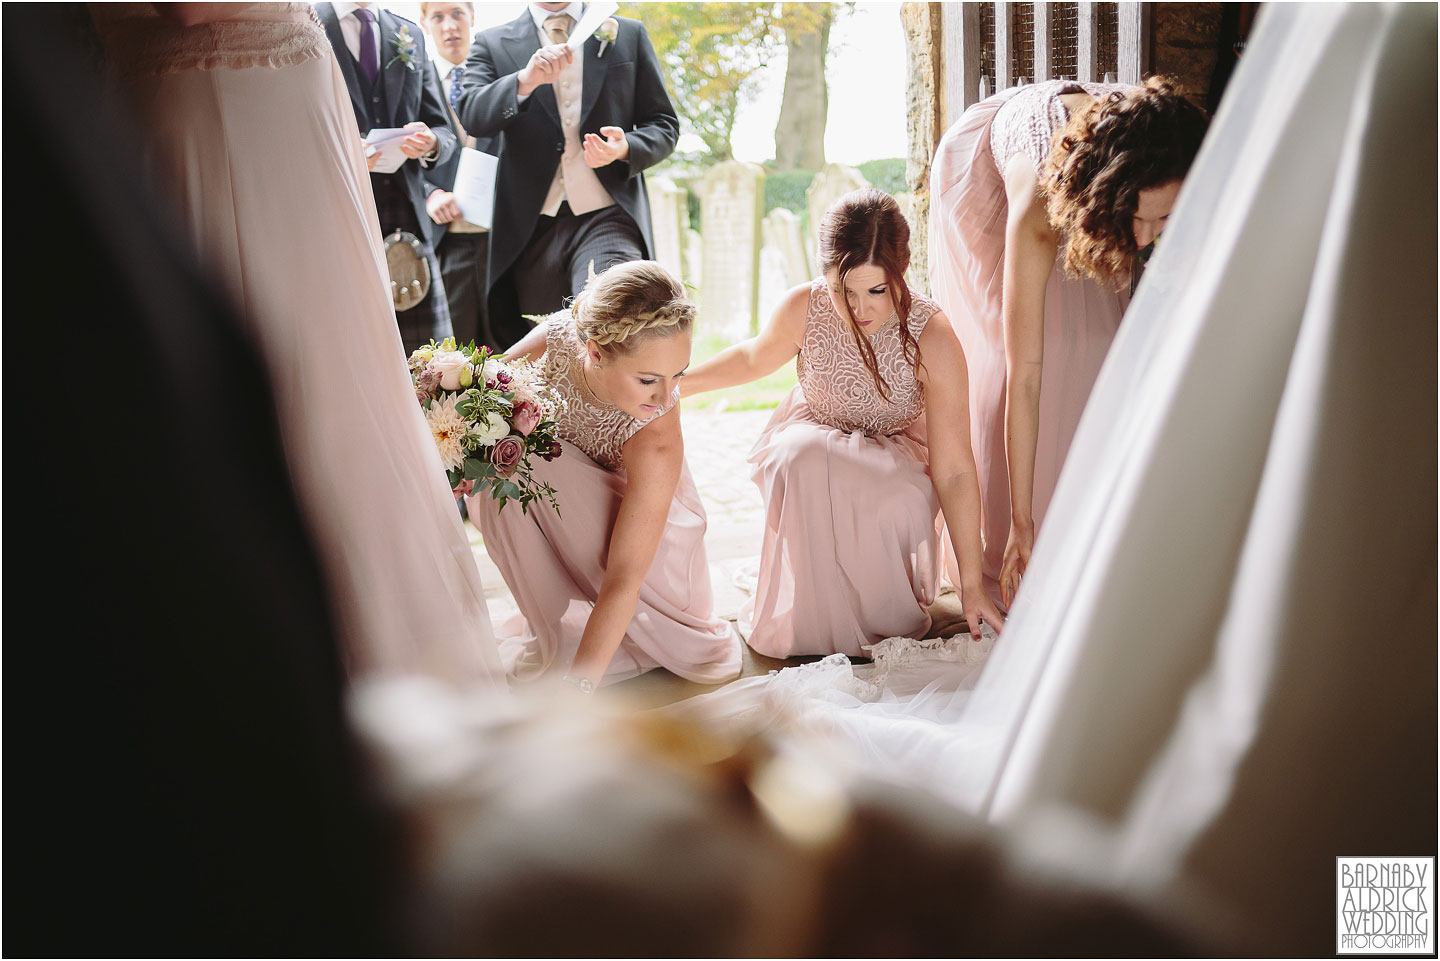 Bridesmaids adjusting the wedding dress